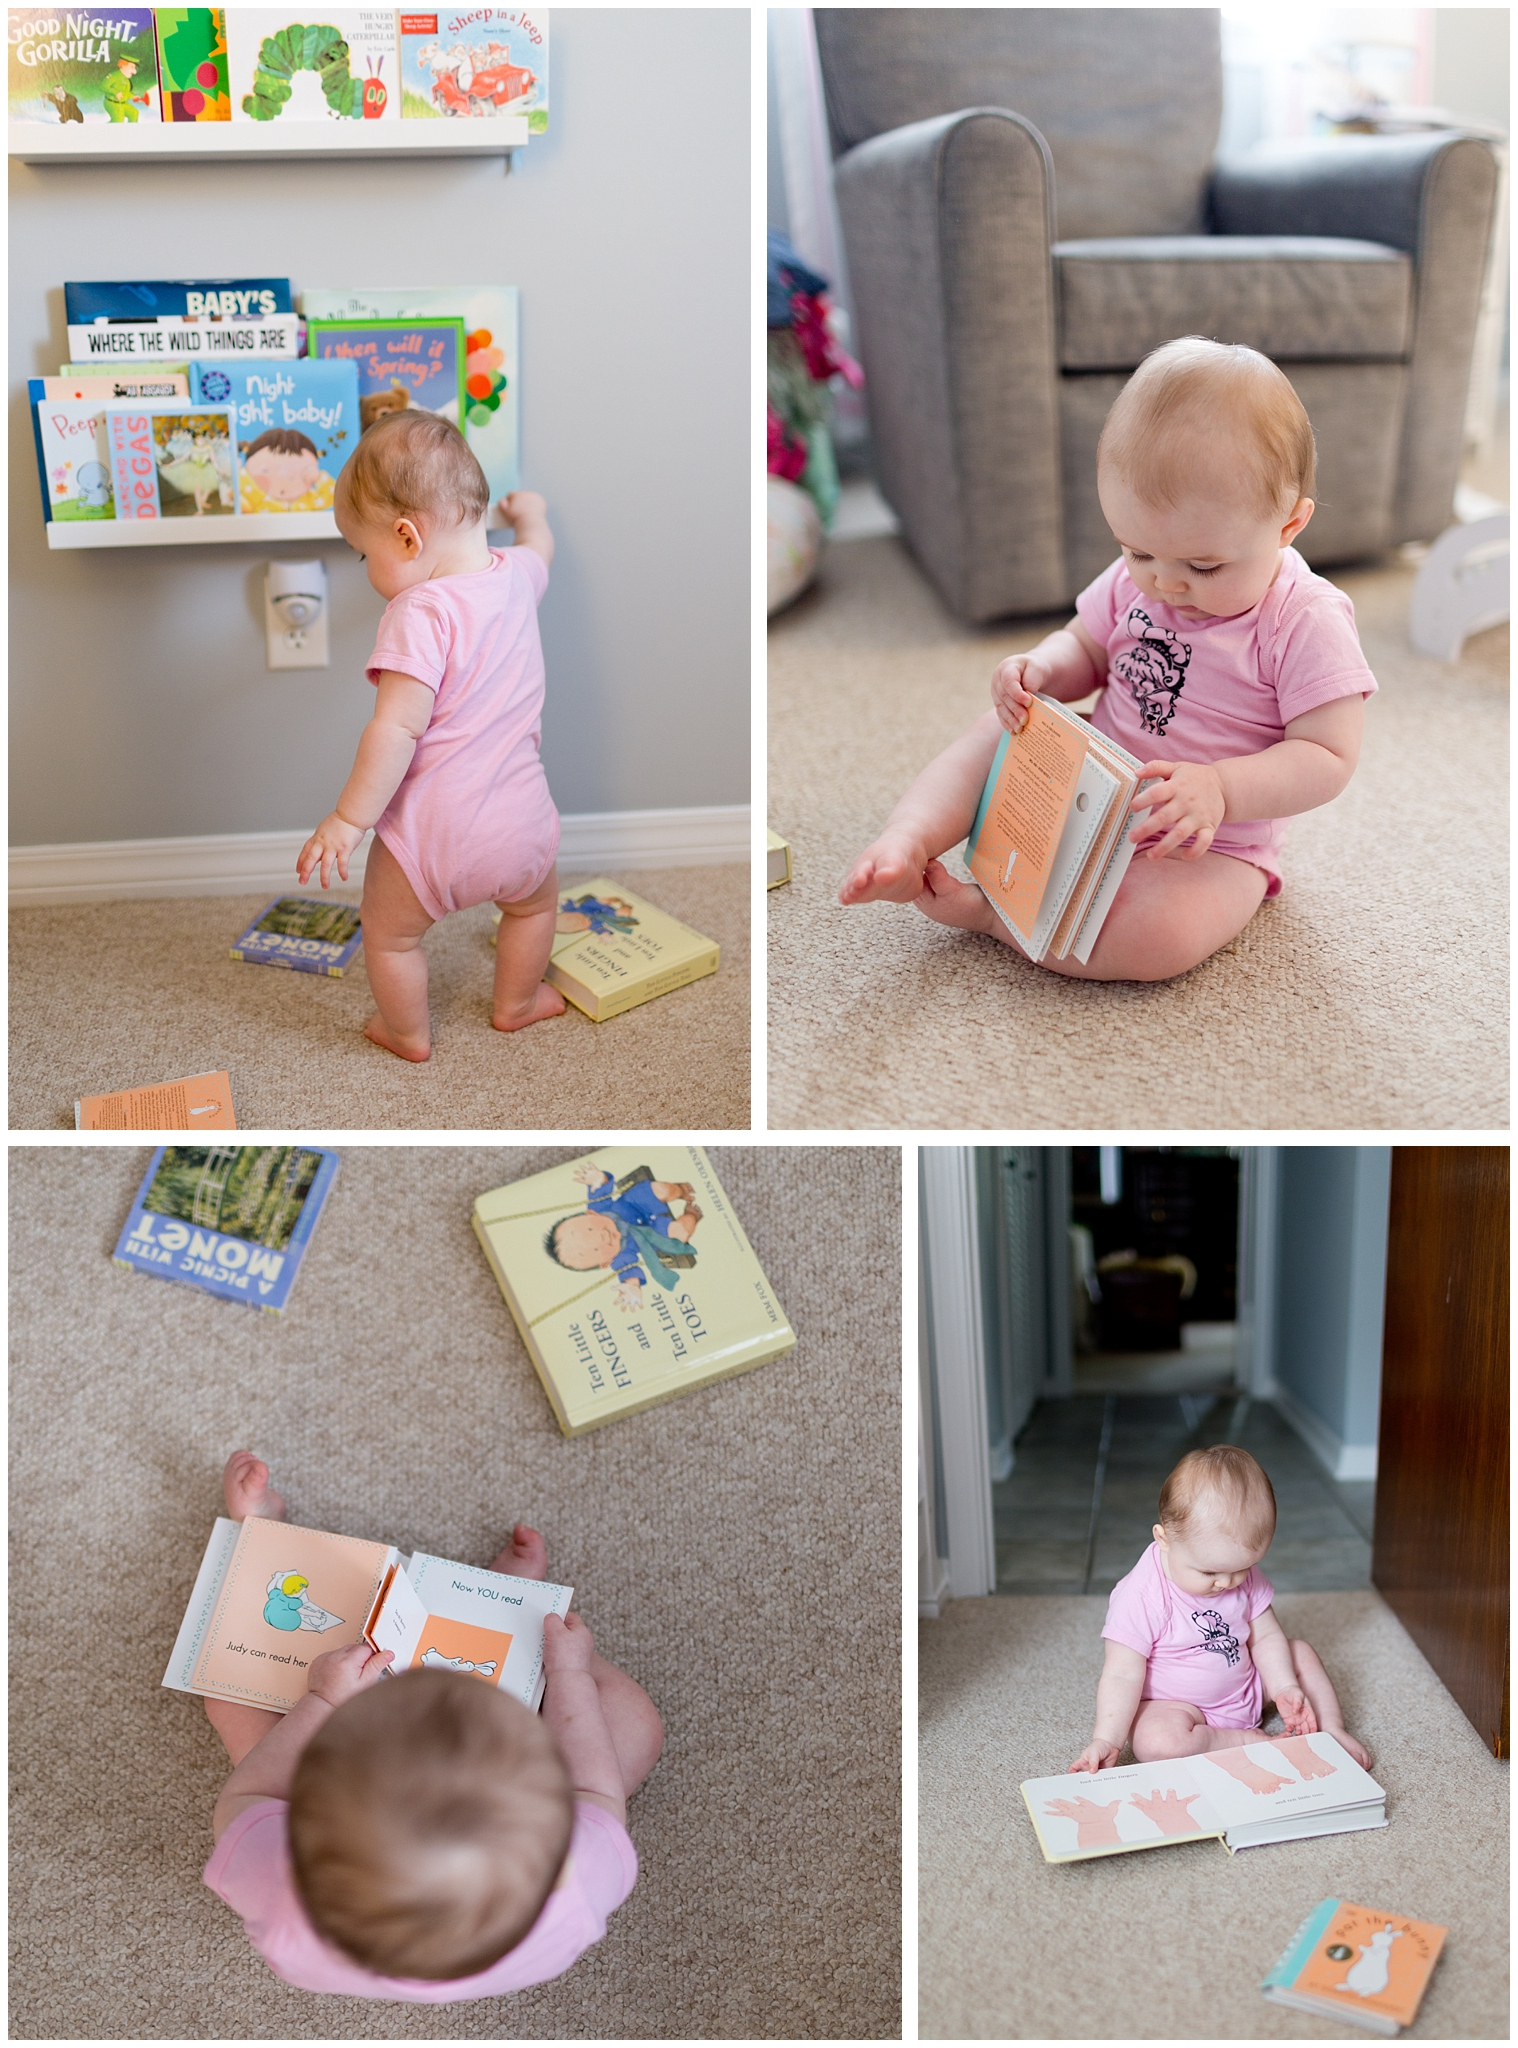 baby girl playing with board books in nursery